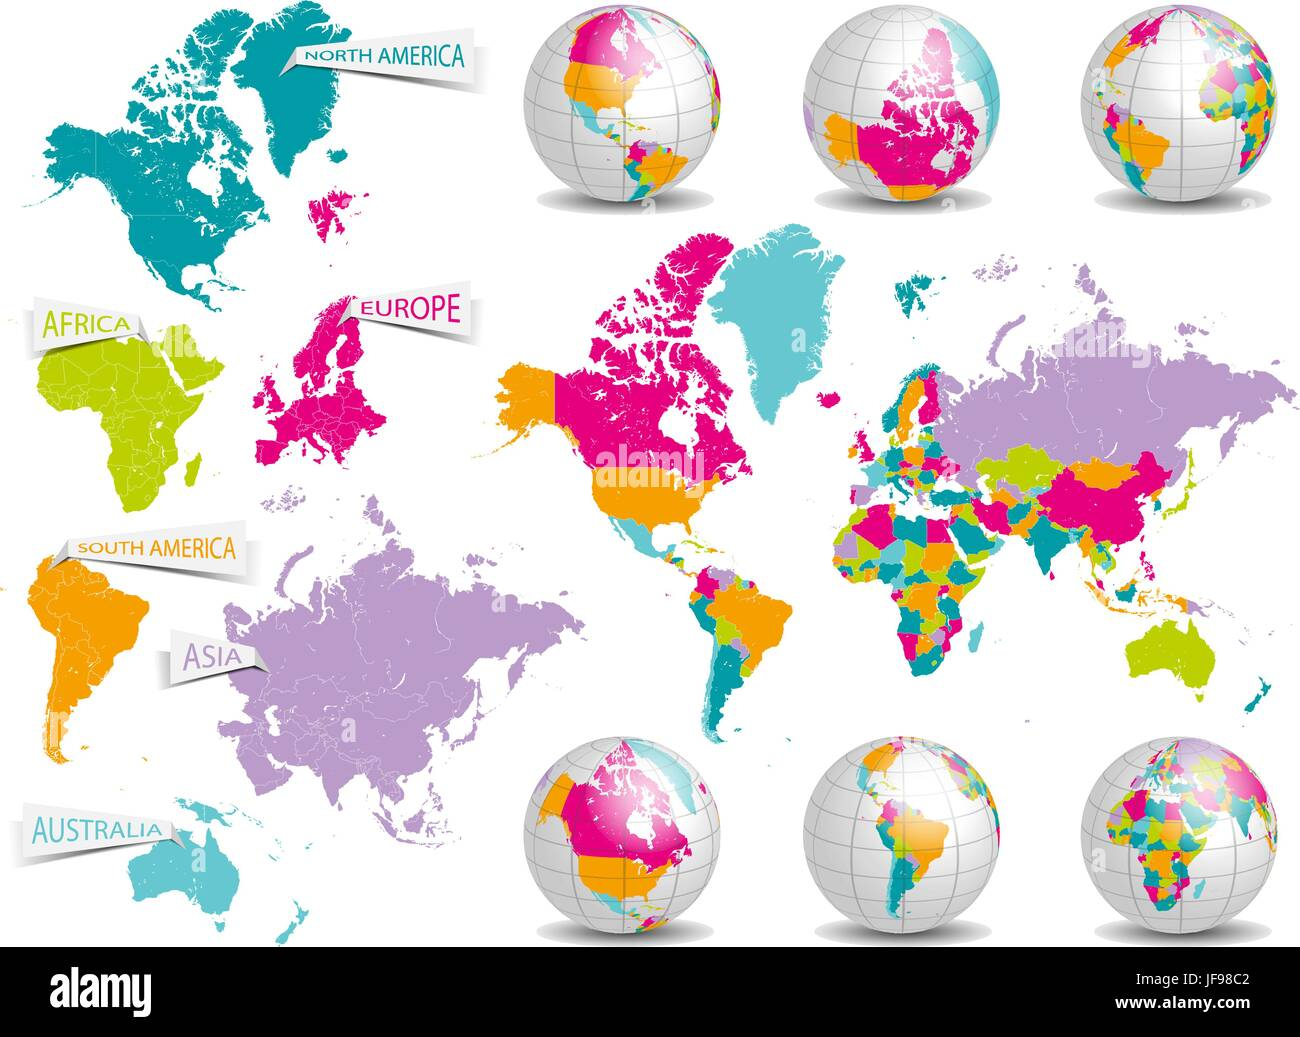 world map with continents and globes vector Stock Vector Art ... on t and o map, maps and tools, raised-relief map, maps and tables, topographic map, maps and directions, maps and travel, maps and compasses, maps and diagrams, maps and books, maps and models, maps and food, maps and scales, maps and water, maps and telescopes, maps and pins, maps and atlases, maps and flags, maps and graphs, maps and charts, world map, maps and calendars, maps and prints, maps and gps,